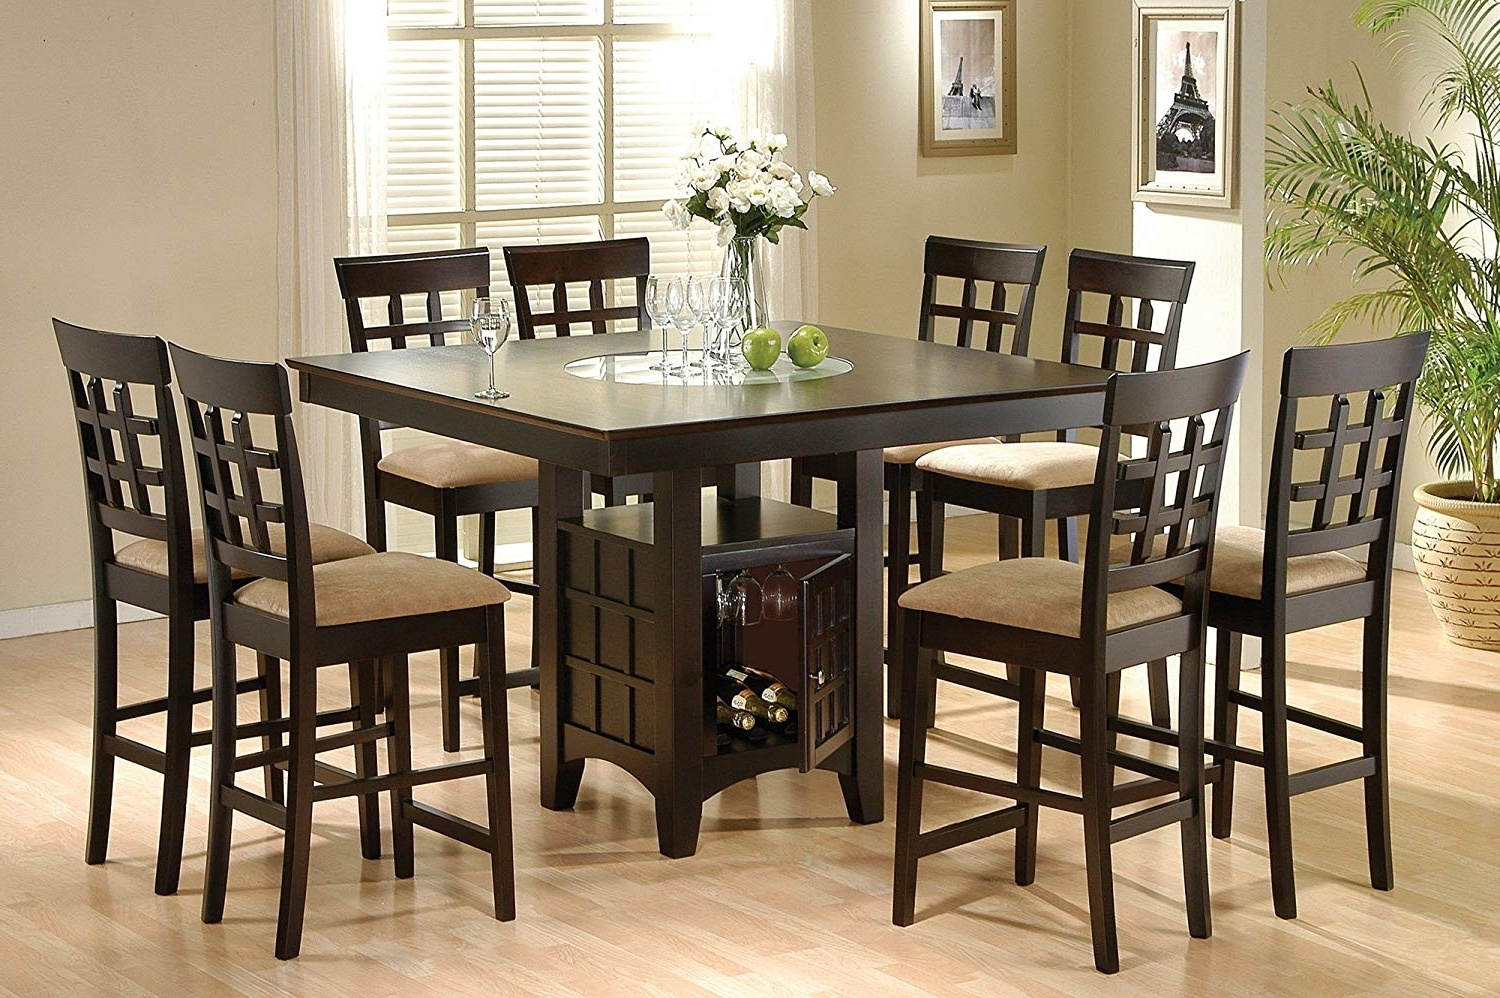 Amazon – Coaster Home Furnishings 9 Piece Counter Height Storage Regarding Fashionable Ina Matte Black 60 Inch Counter Tables With Frosted Glass (View 19 of 25)